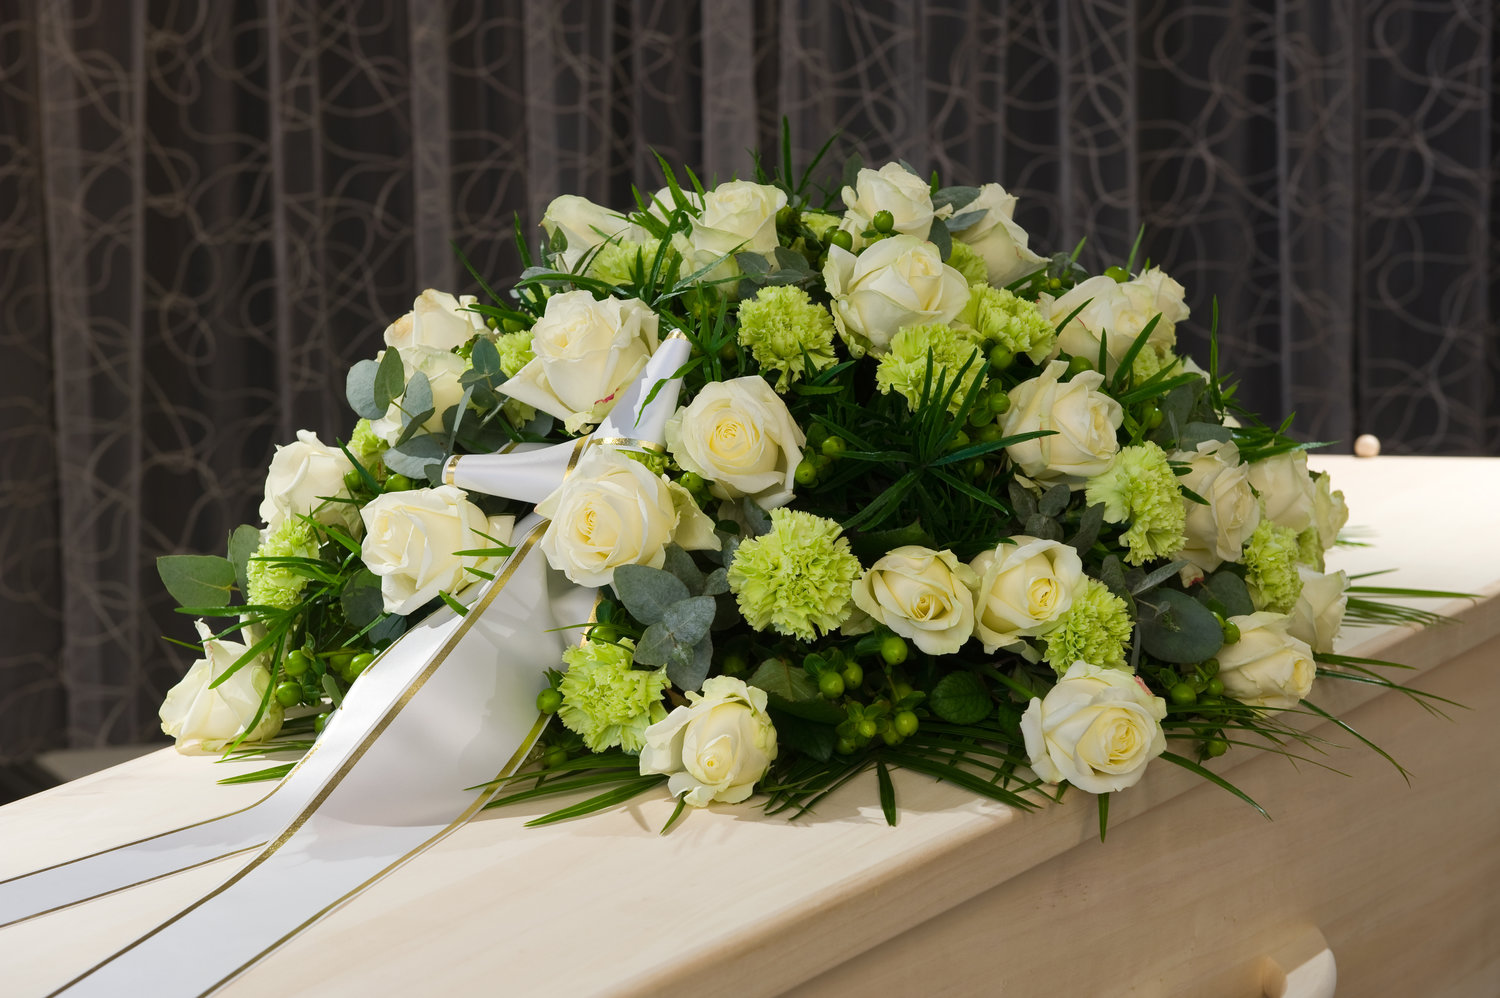 Funeral flowers edmonton in loving memory cerise floral studio shutterstock368244734g flowers can say the words izmirmasajfo